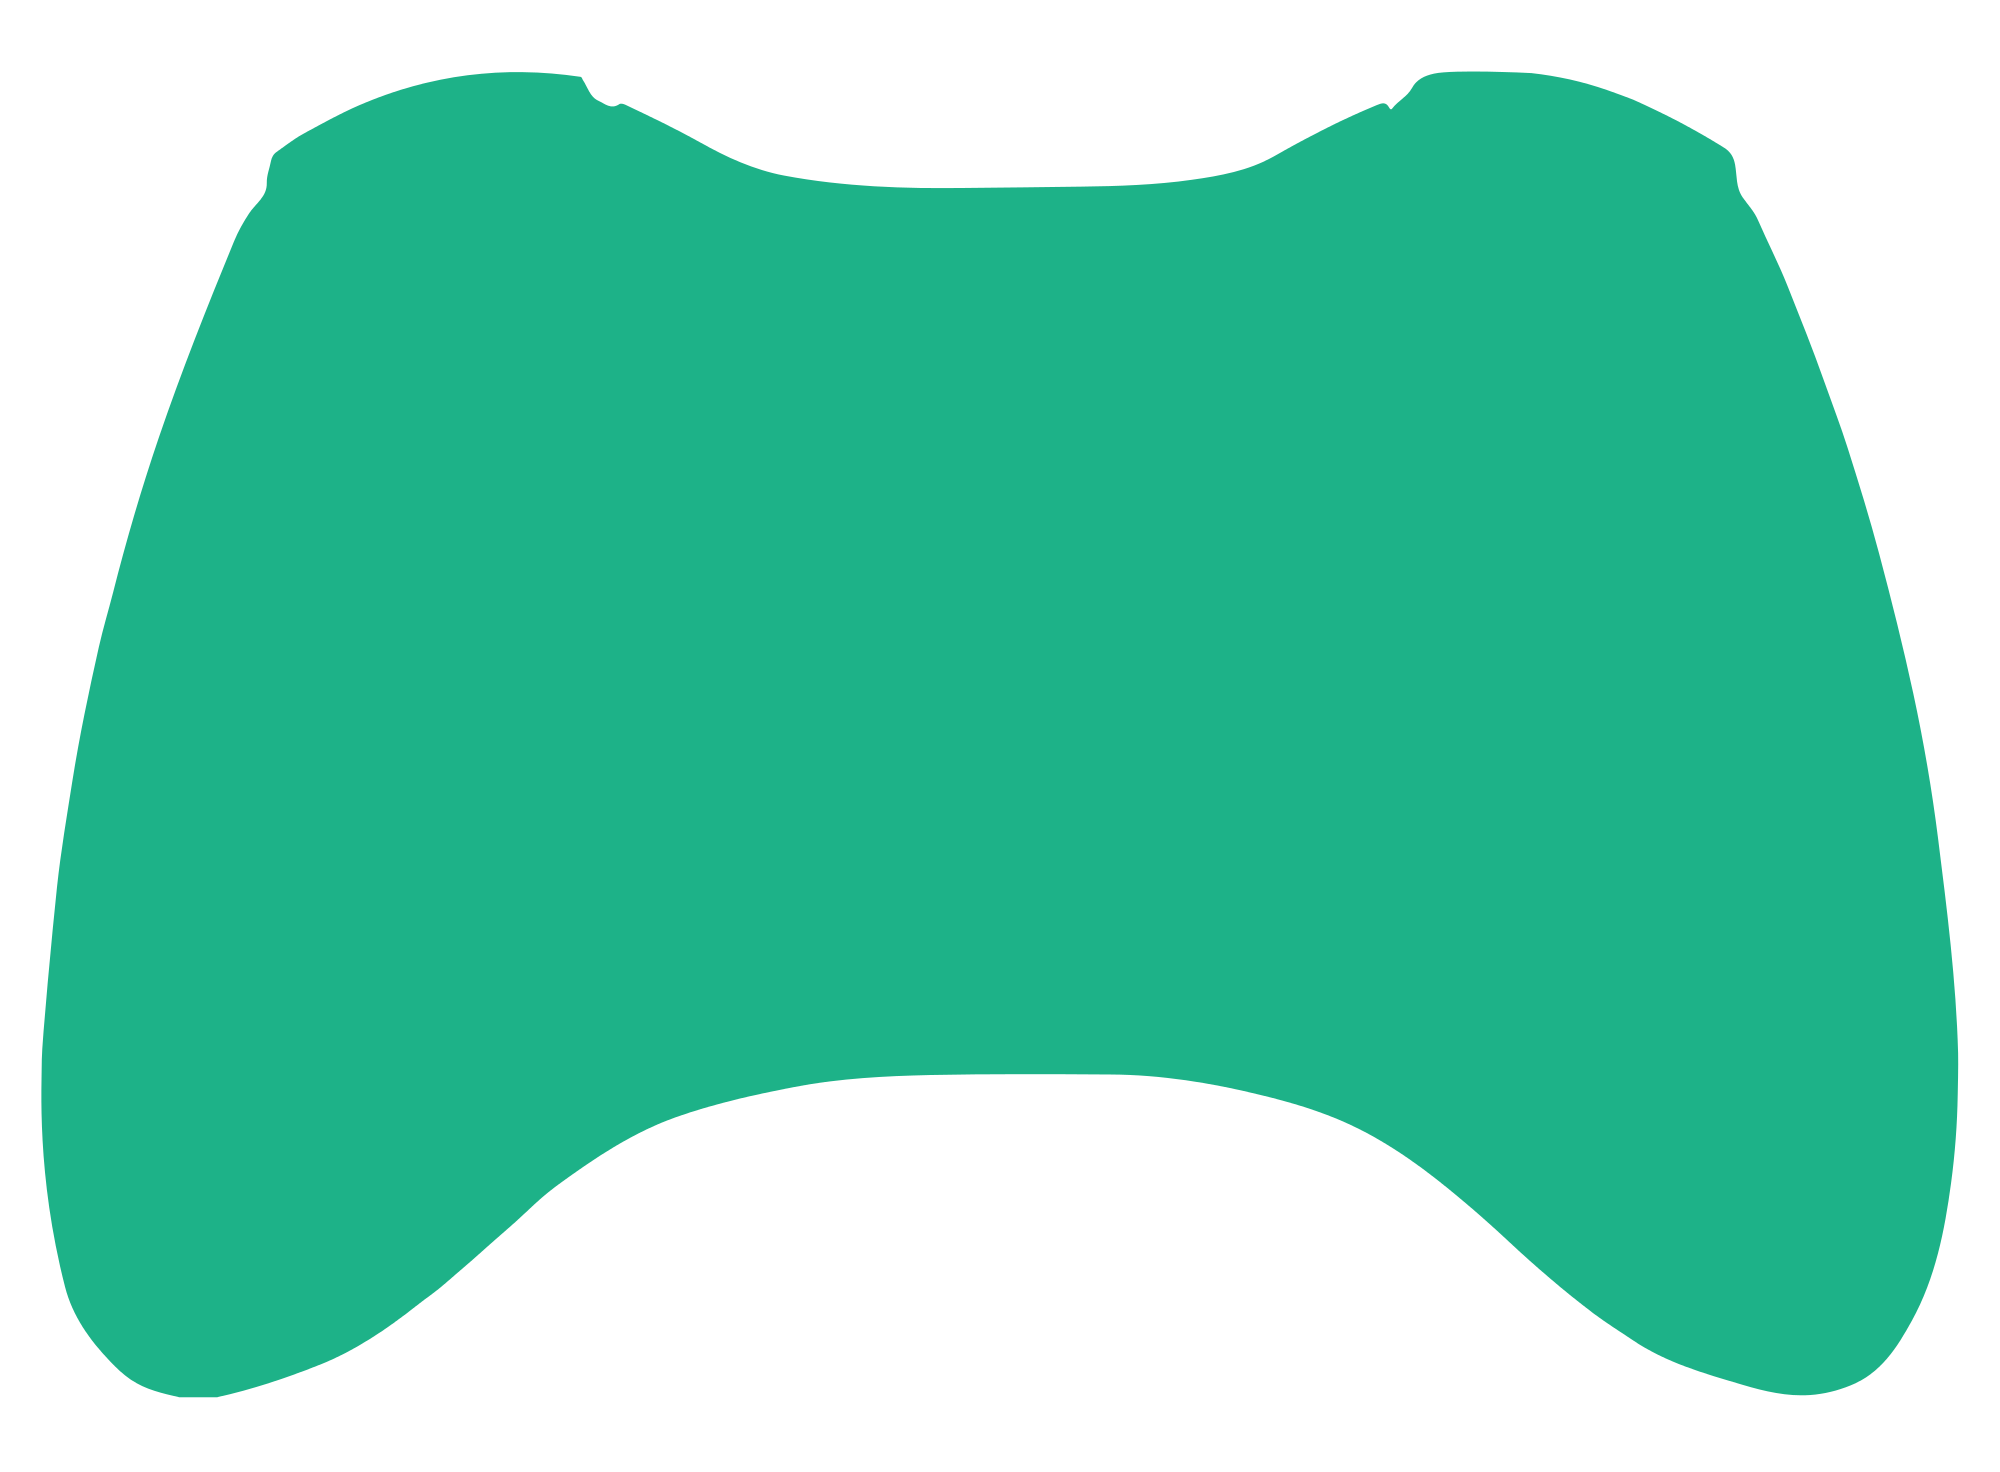 2000x1472 Filefull Controller Support Vector Graphic.svg